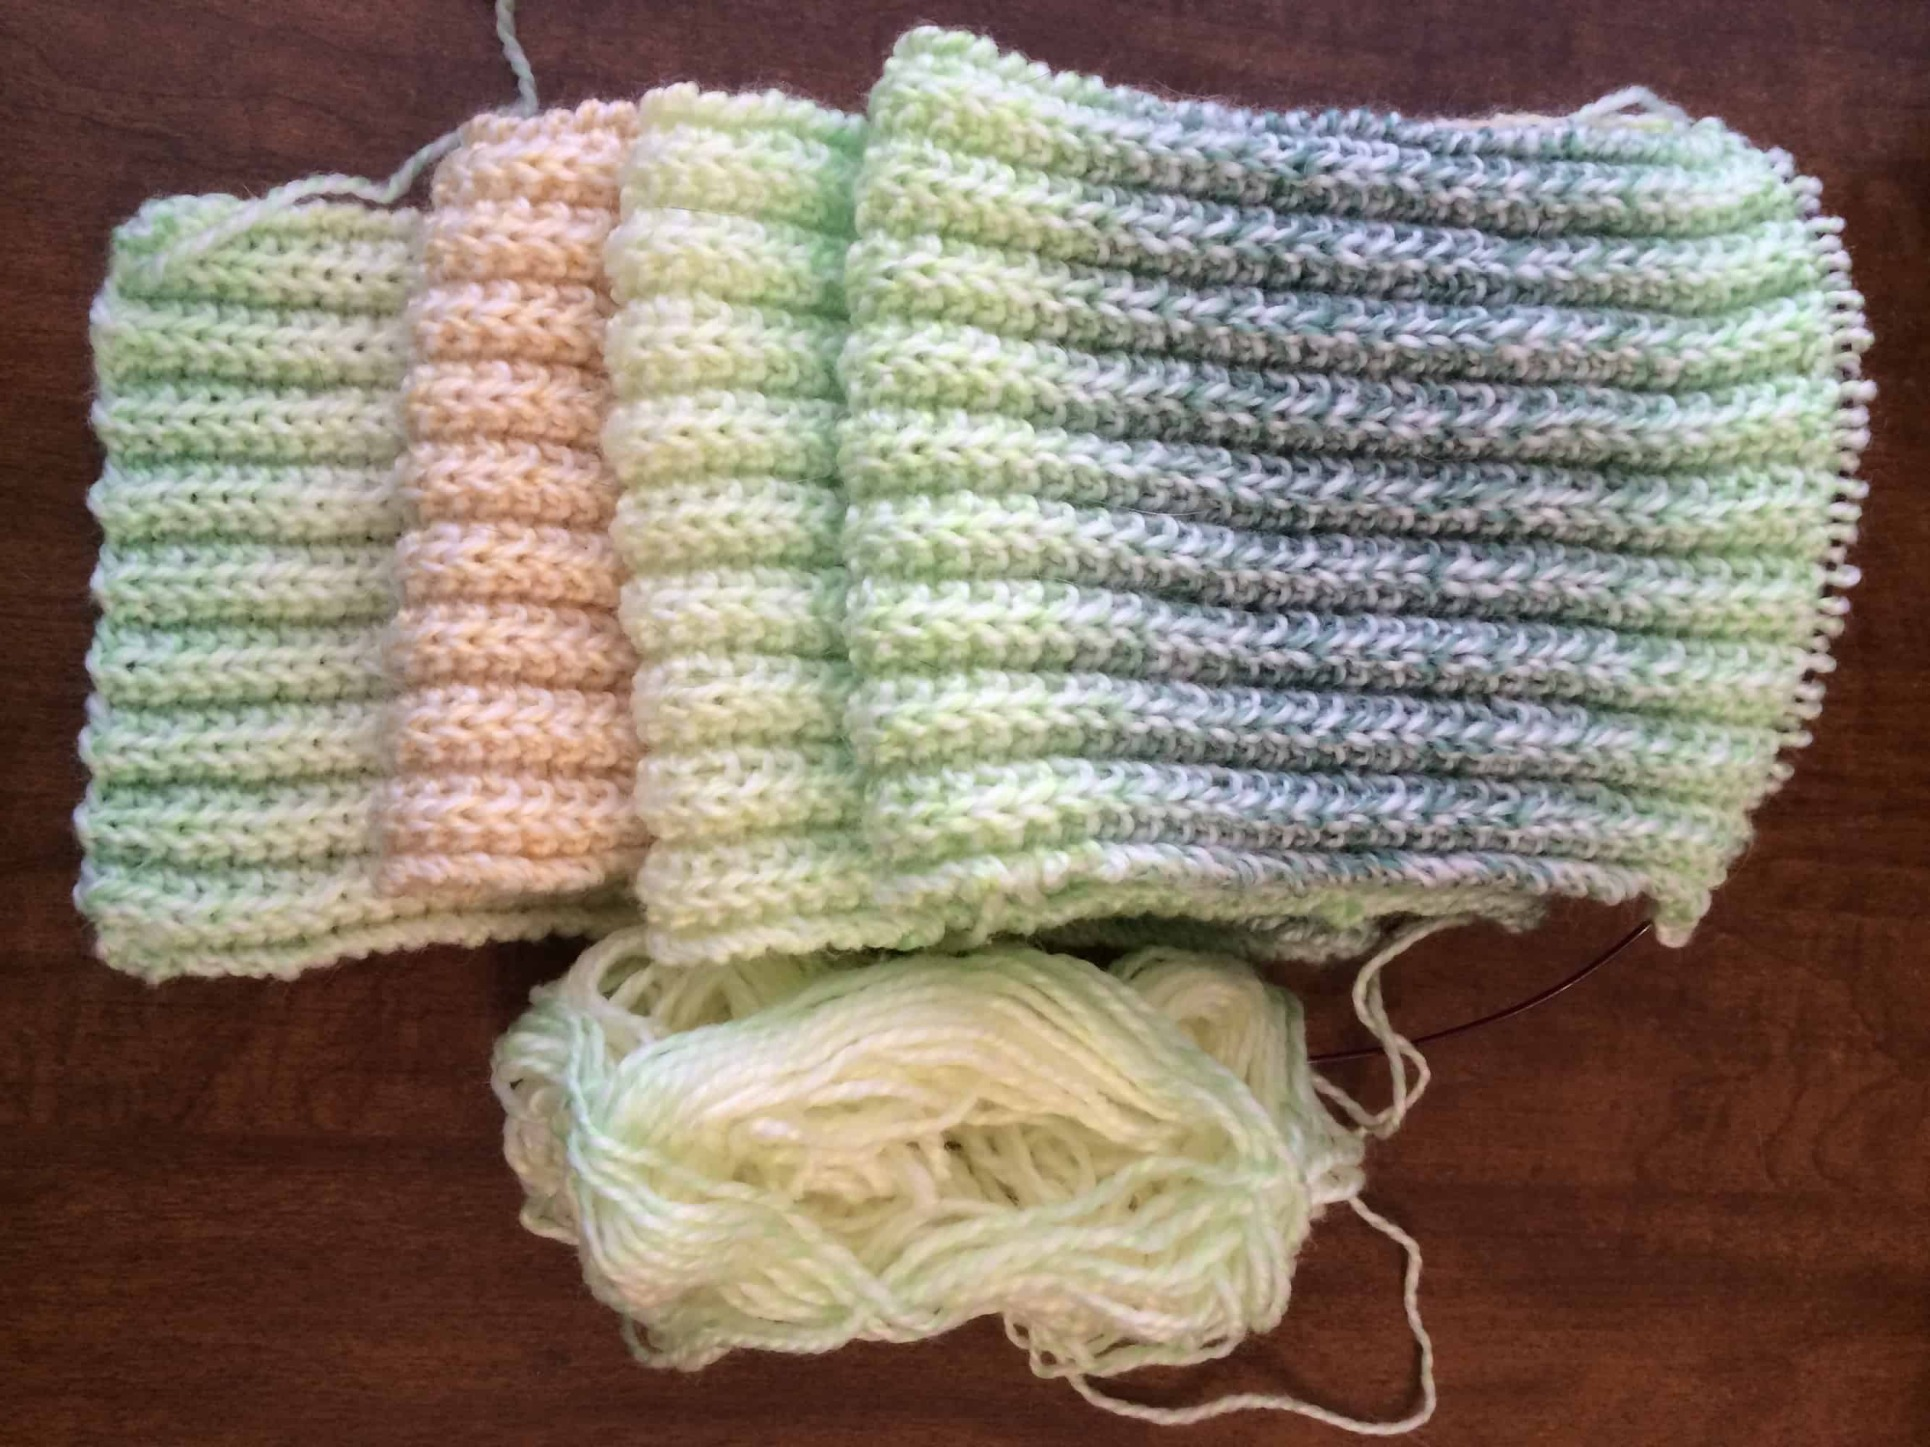 WIP Wednesday: January 7, 2014